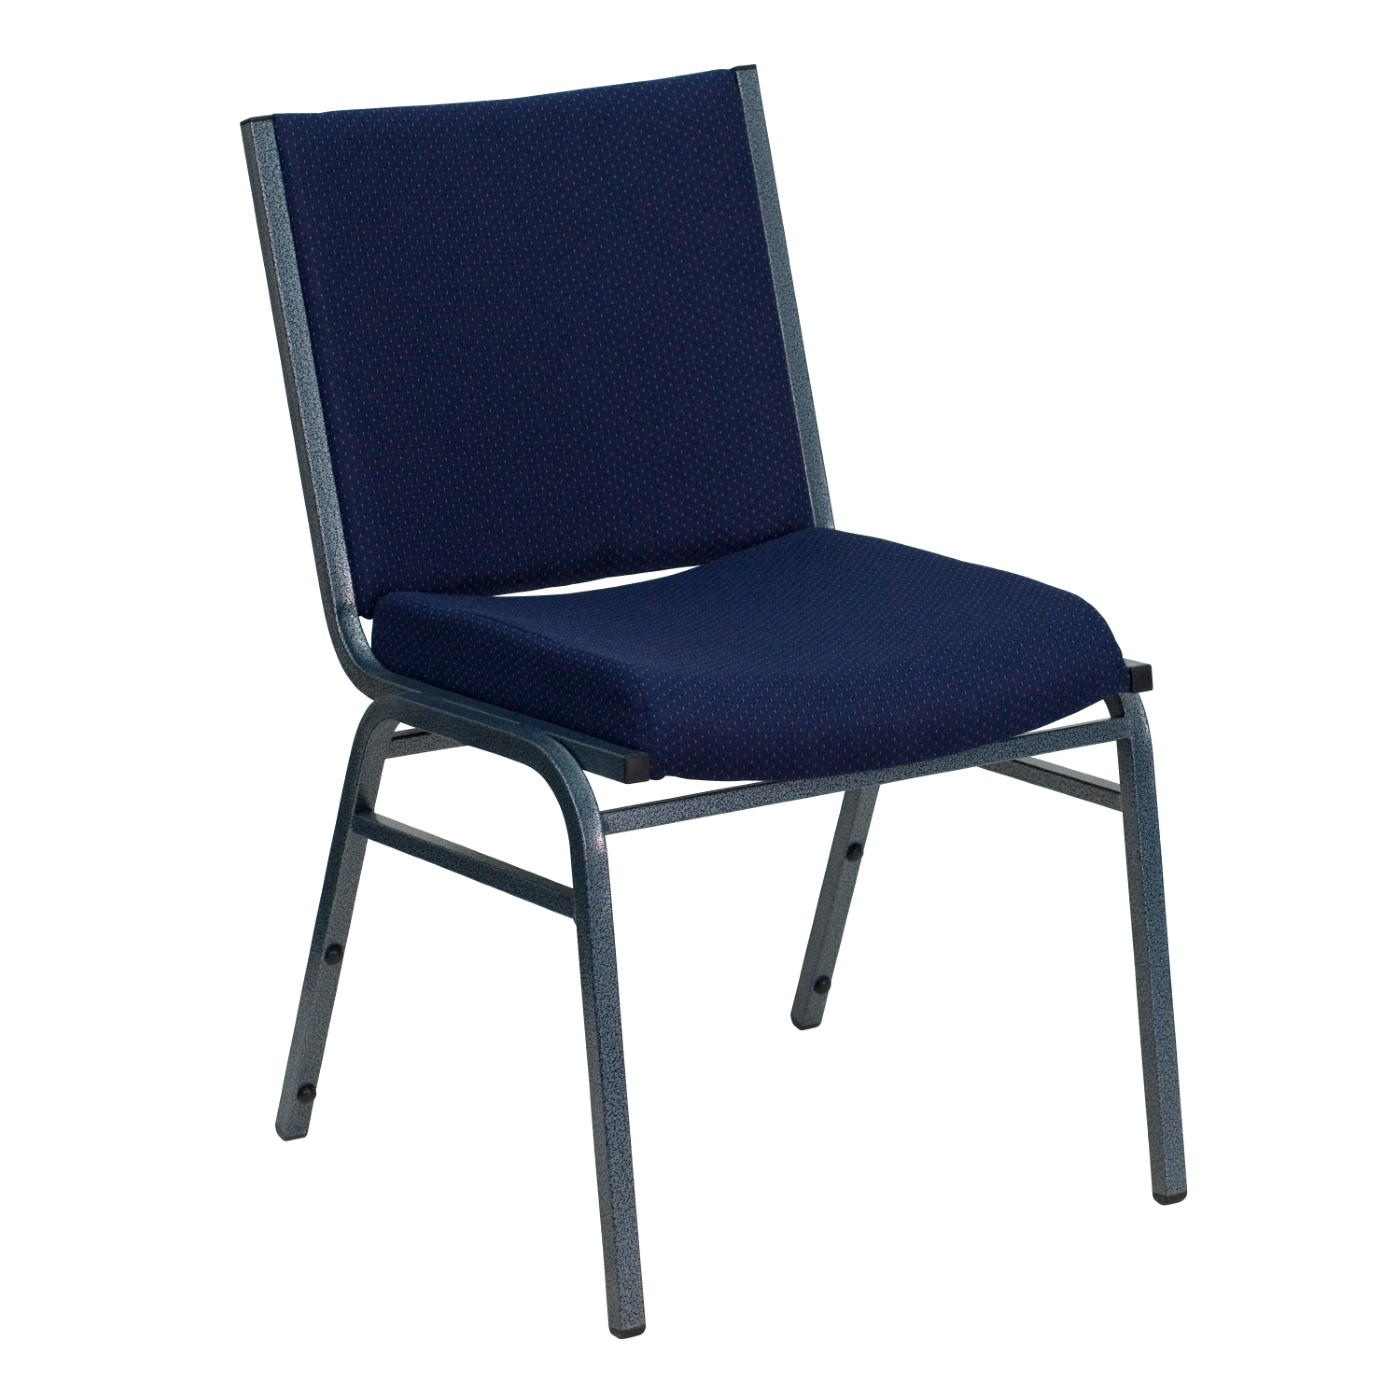 TOUGH ENOUGH Series Heavy Duty Navy Blue Dot Fabric Stack Chair